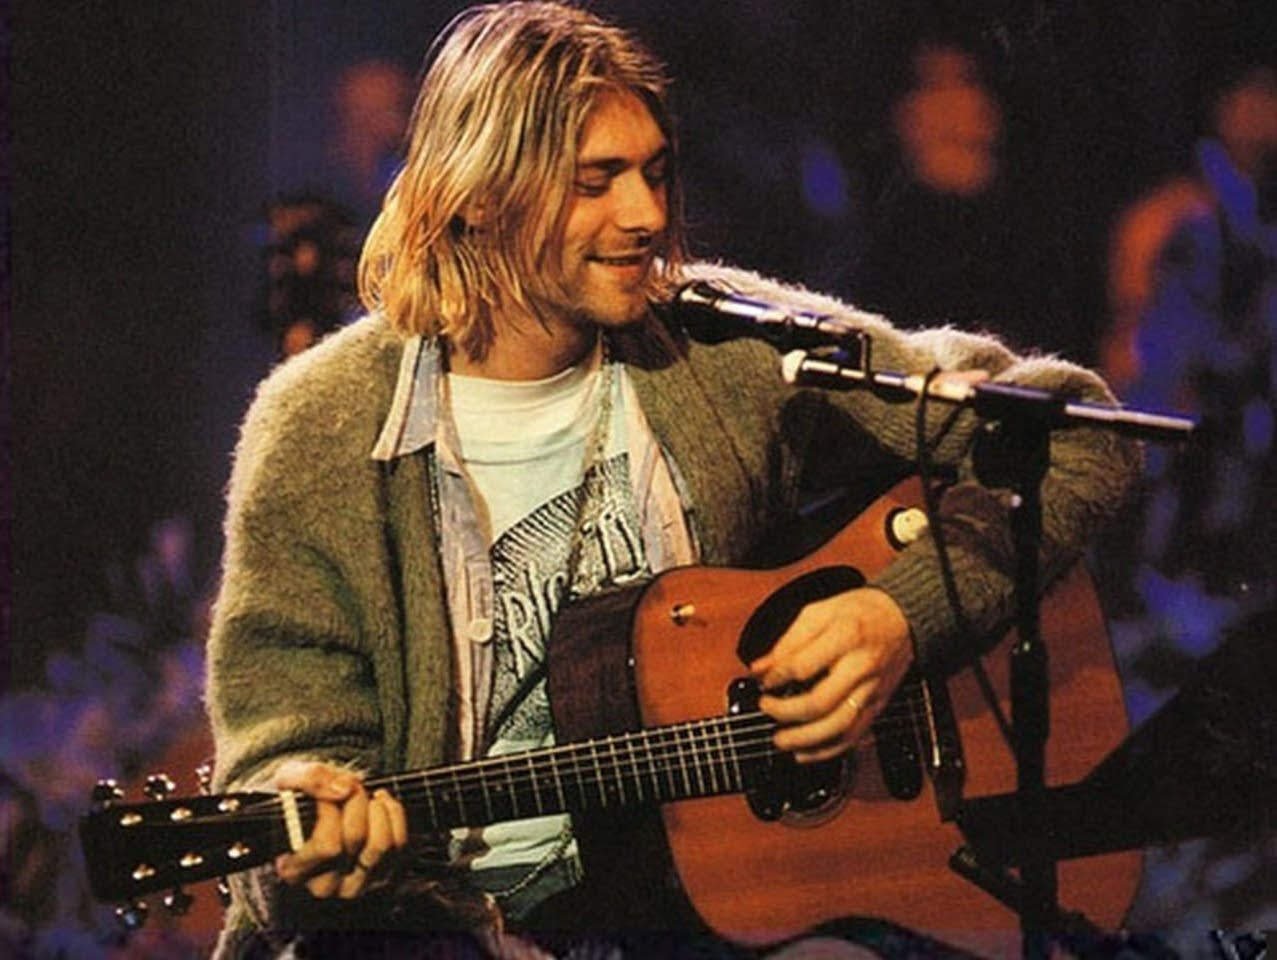 Kurt Cobain performs with Nirvana on 'MTV Unplugged' in 1993.